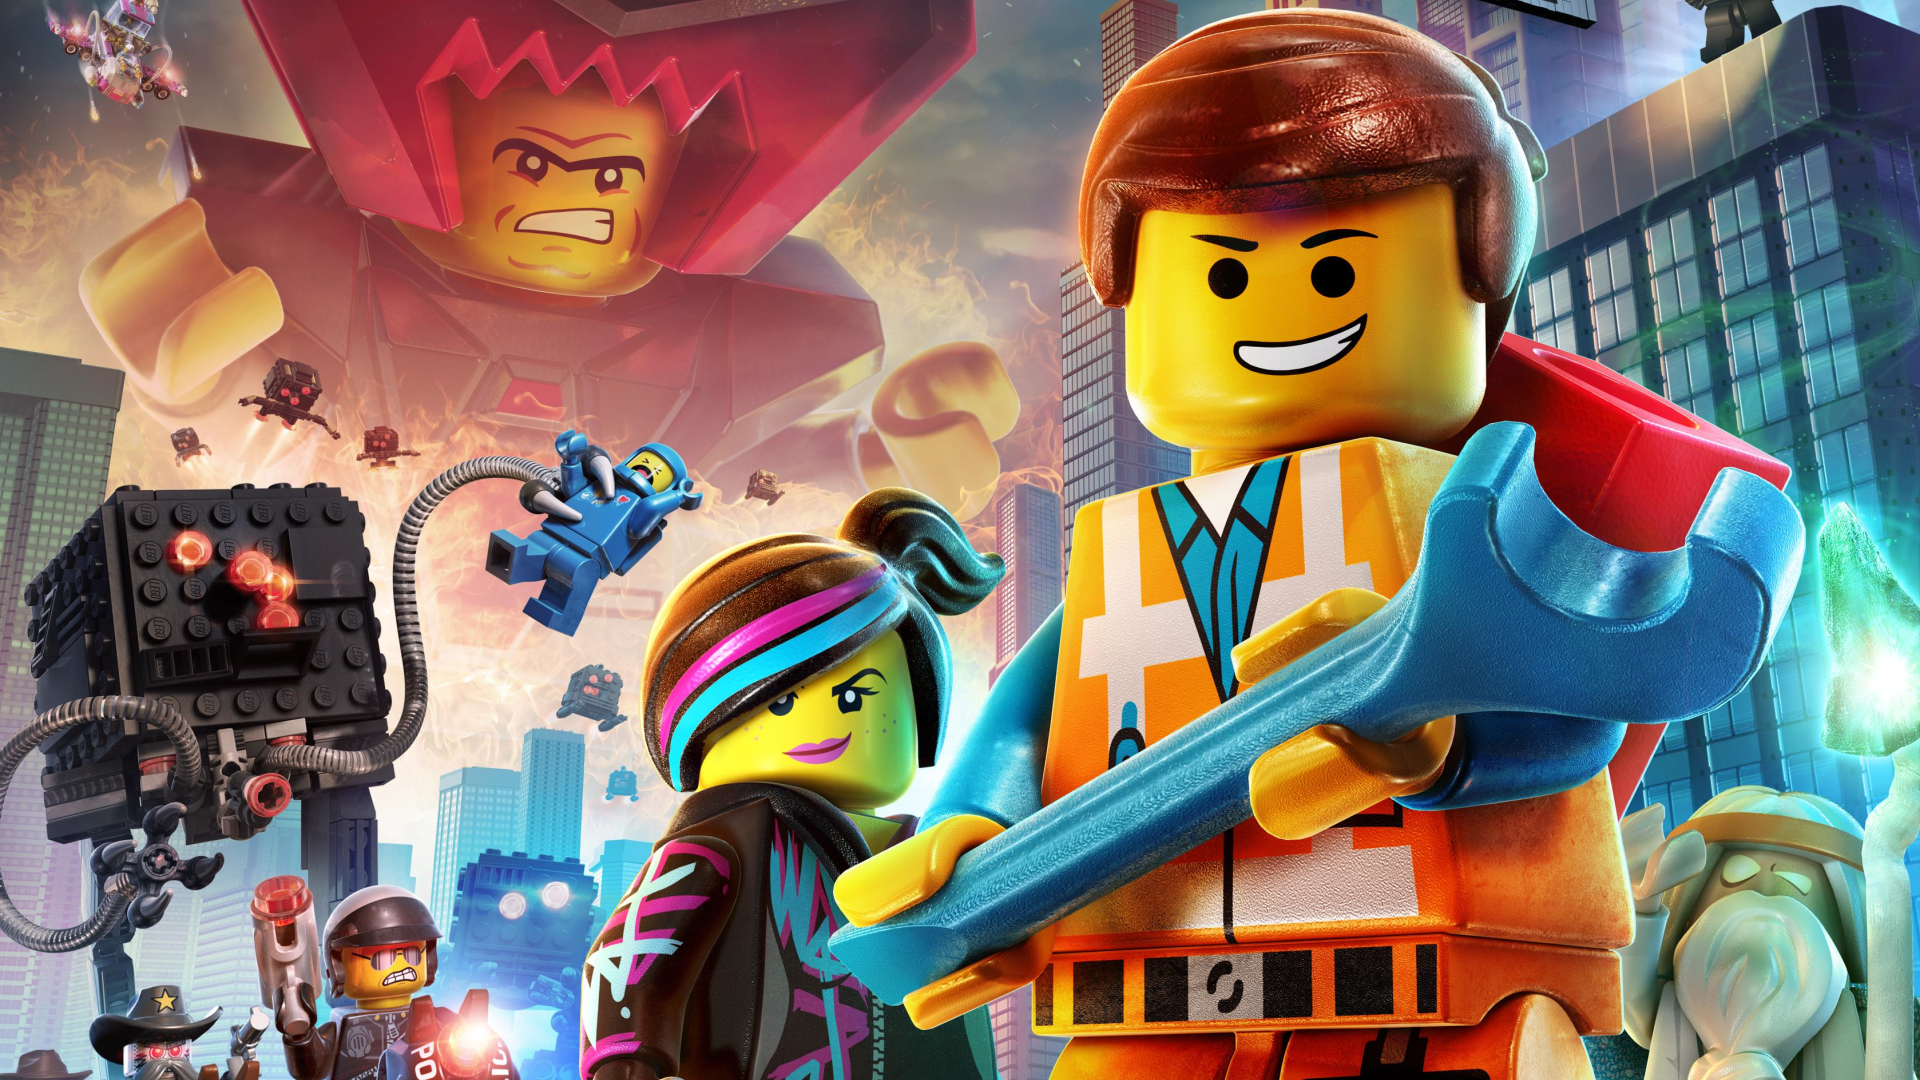 lego movie city background - photo #14